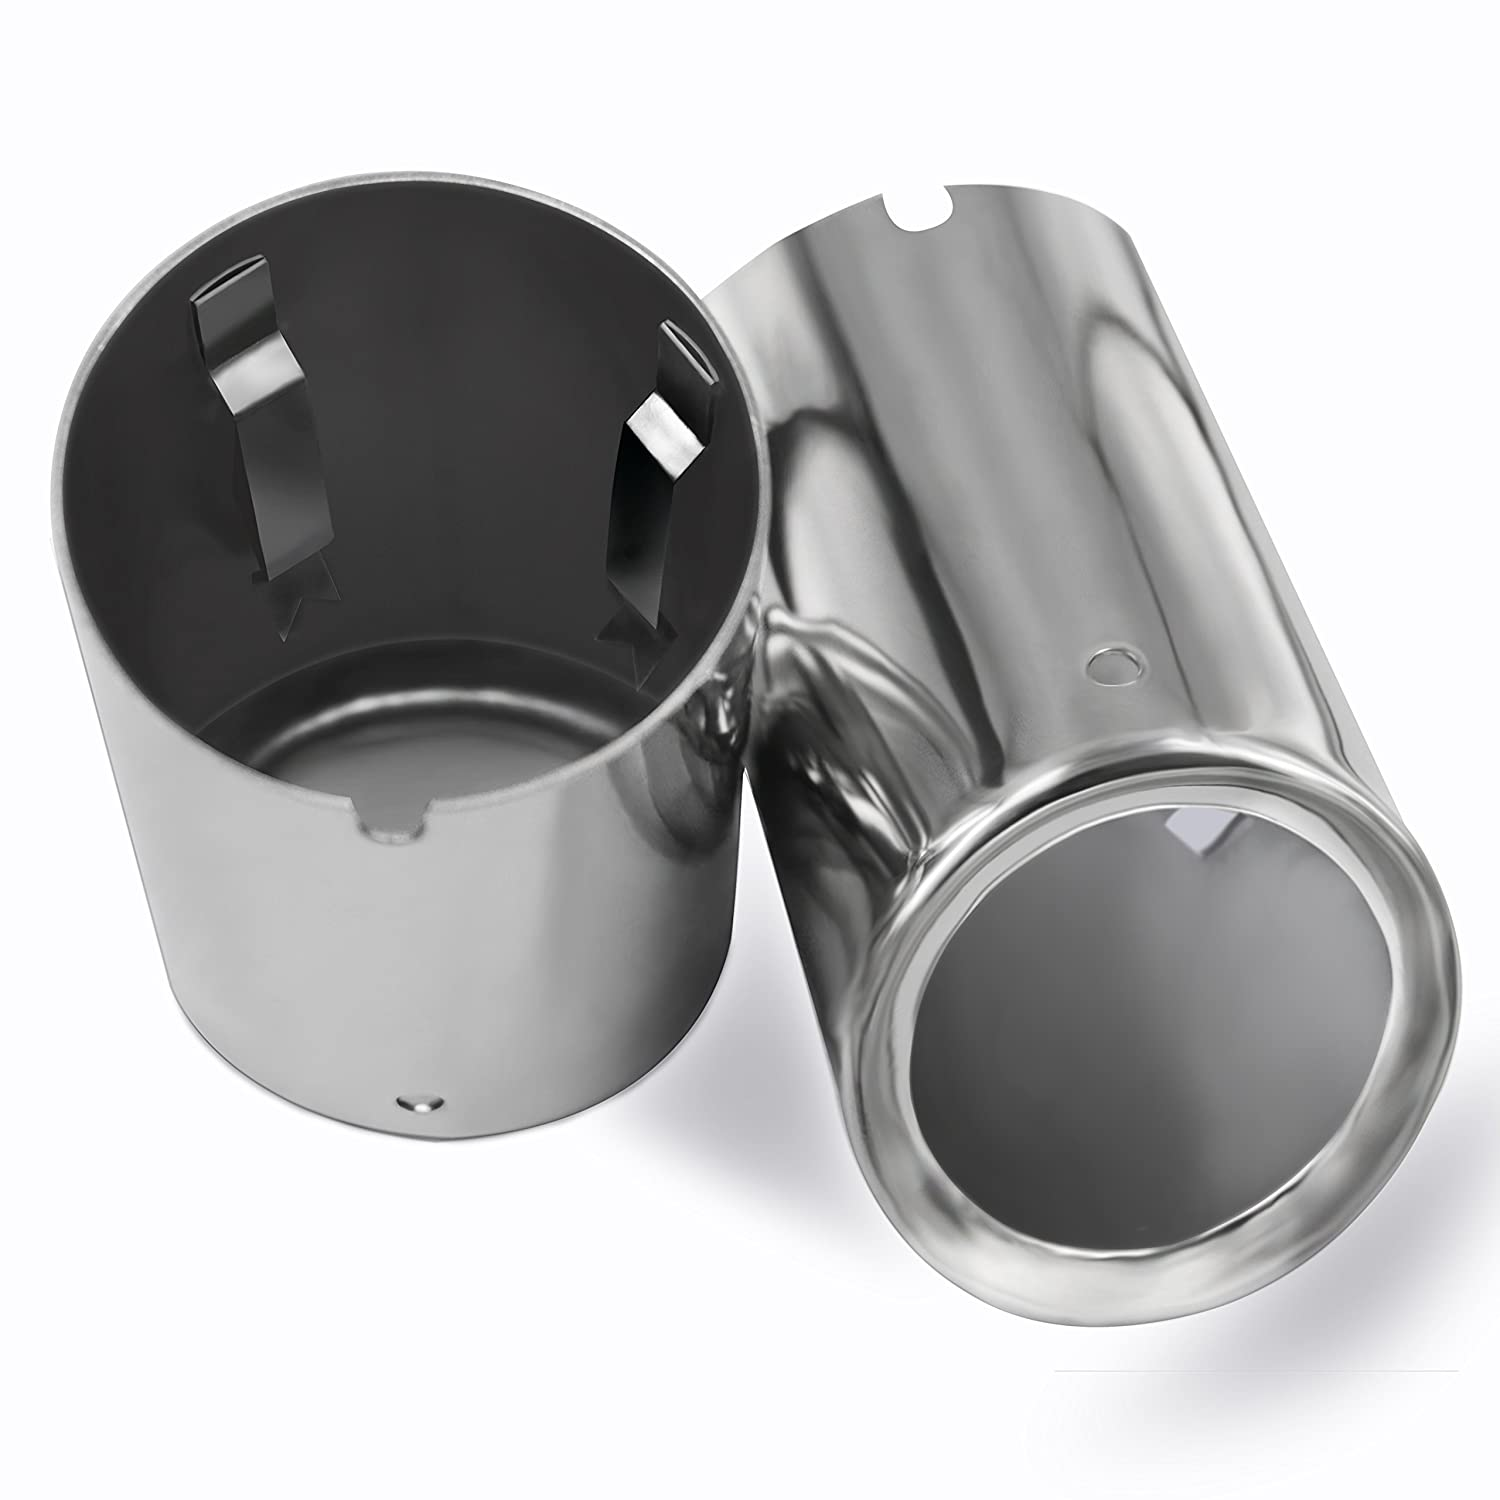 Fashion Auto Parts Chrome Stainless Steel Exhaust Muffler Tip Pipes for VW Volkswagen JETTA MK6 2009-2015 Antozon